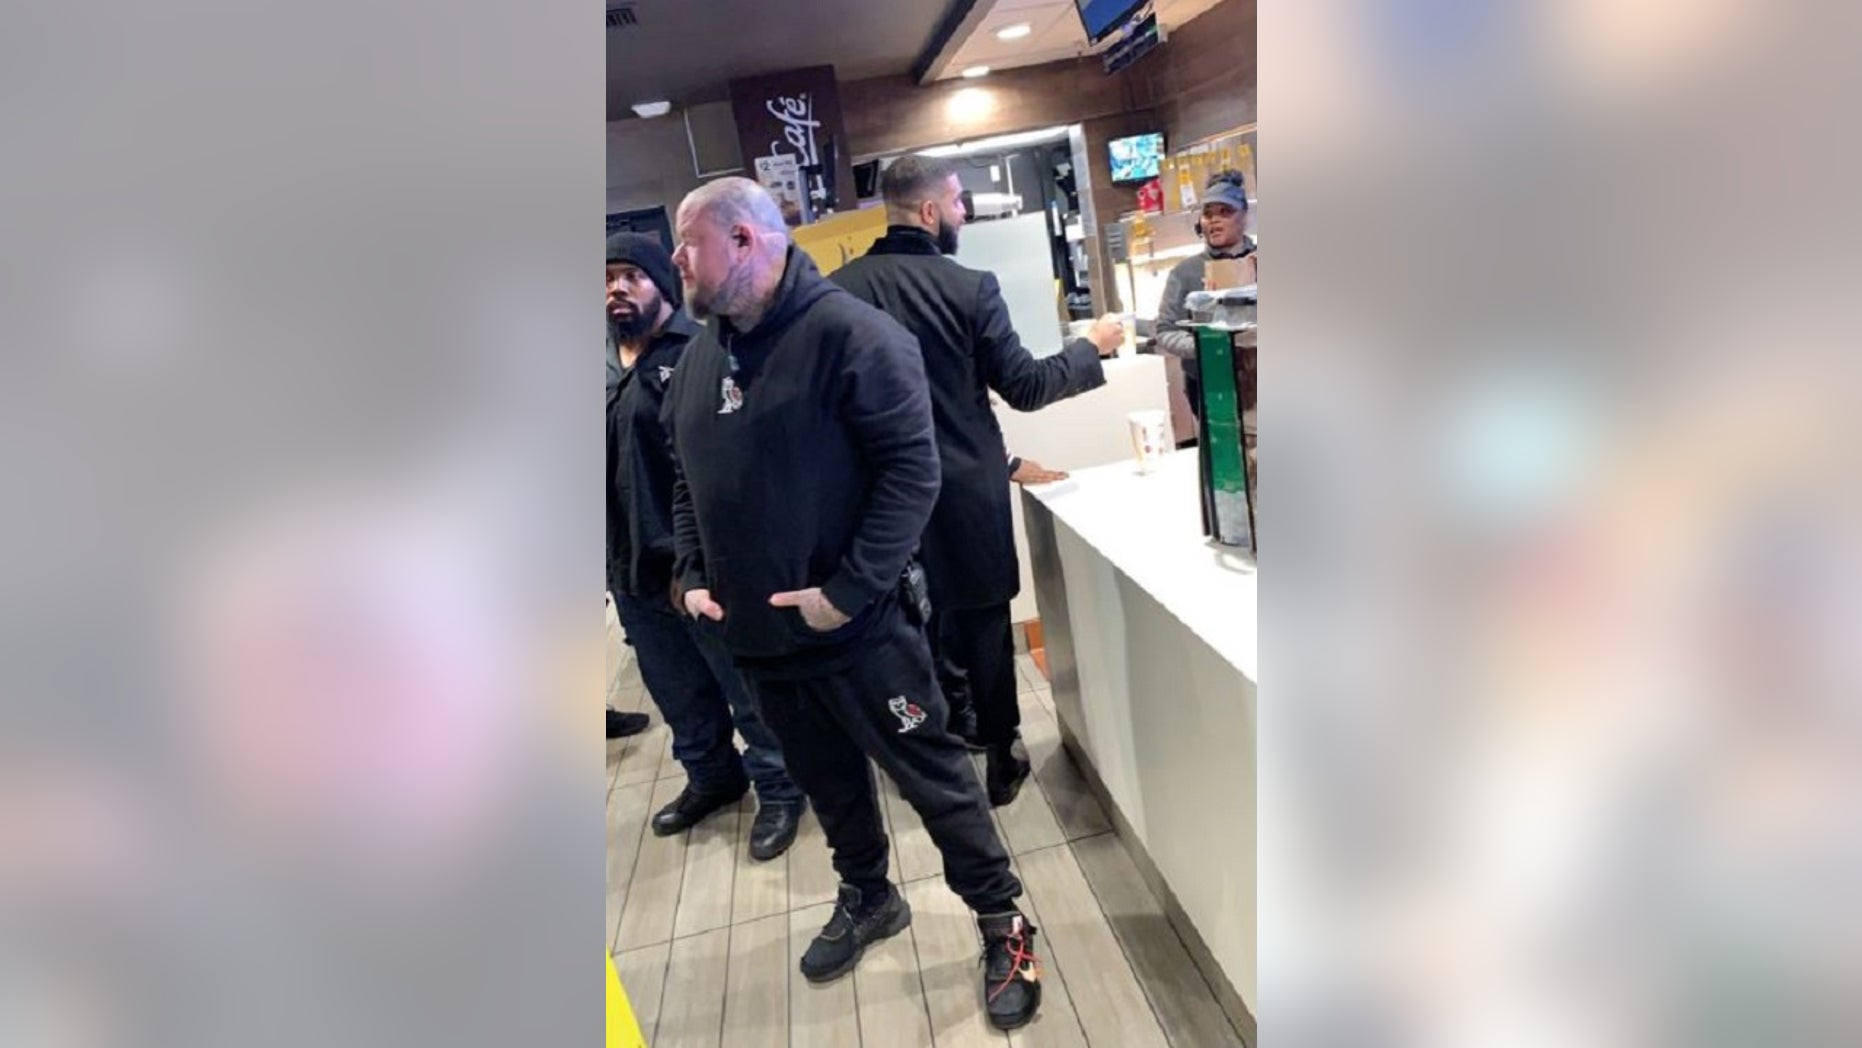 Drake appears to hand a hefty tip to McDonald's employees in Los Angeles last weekend.